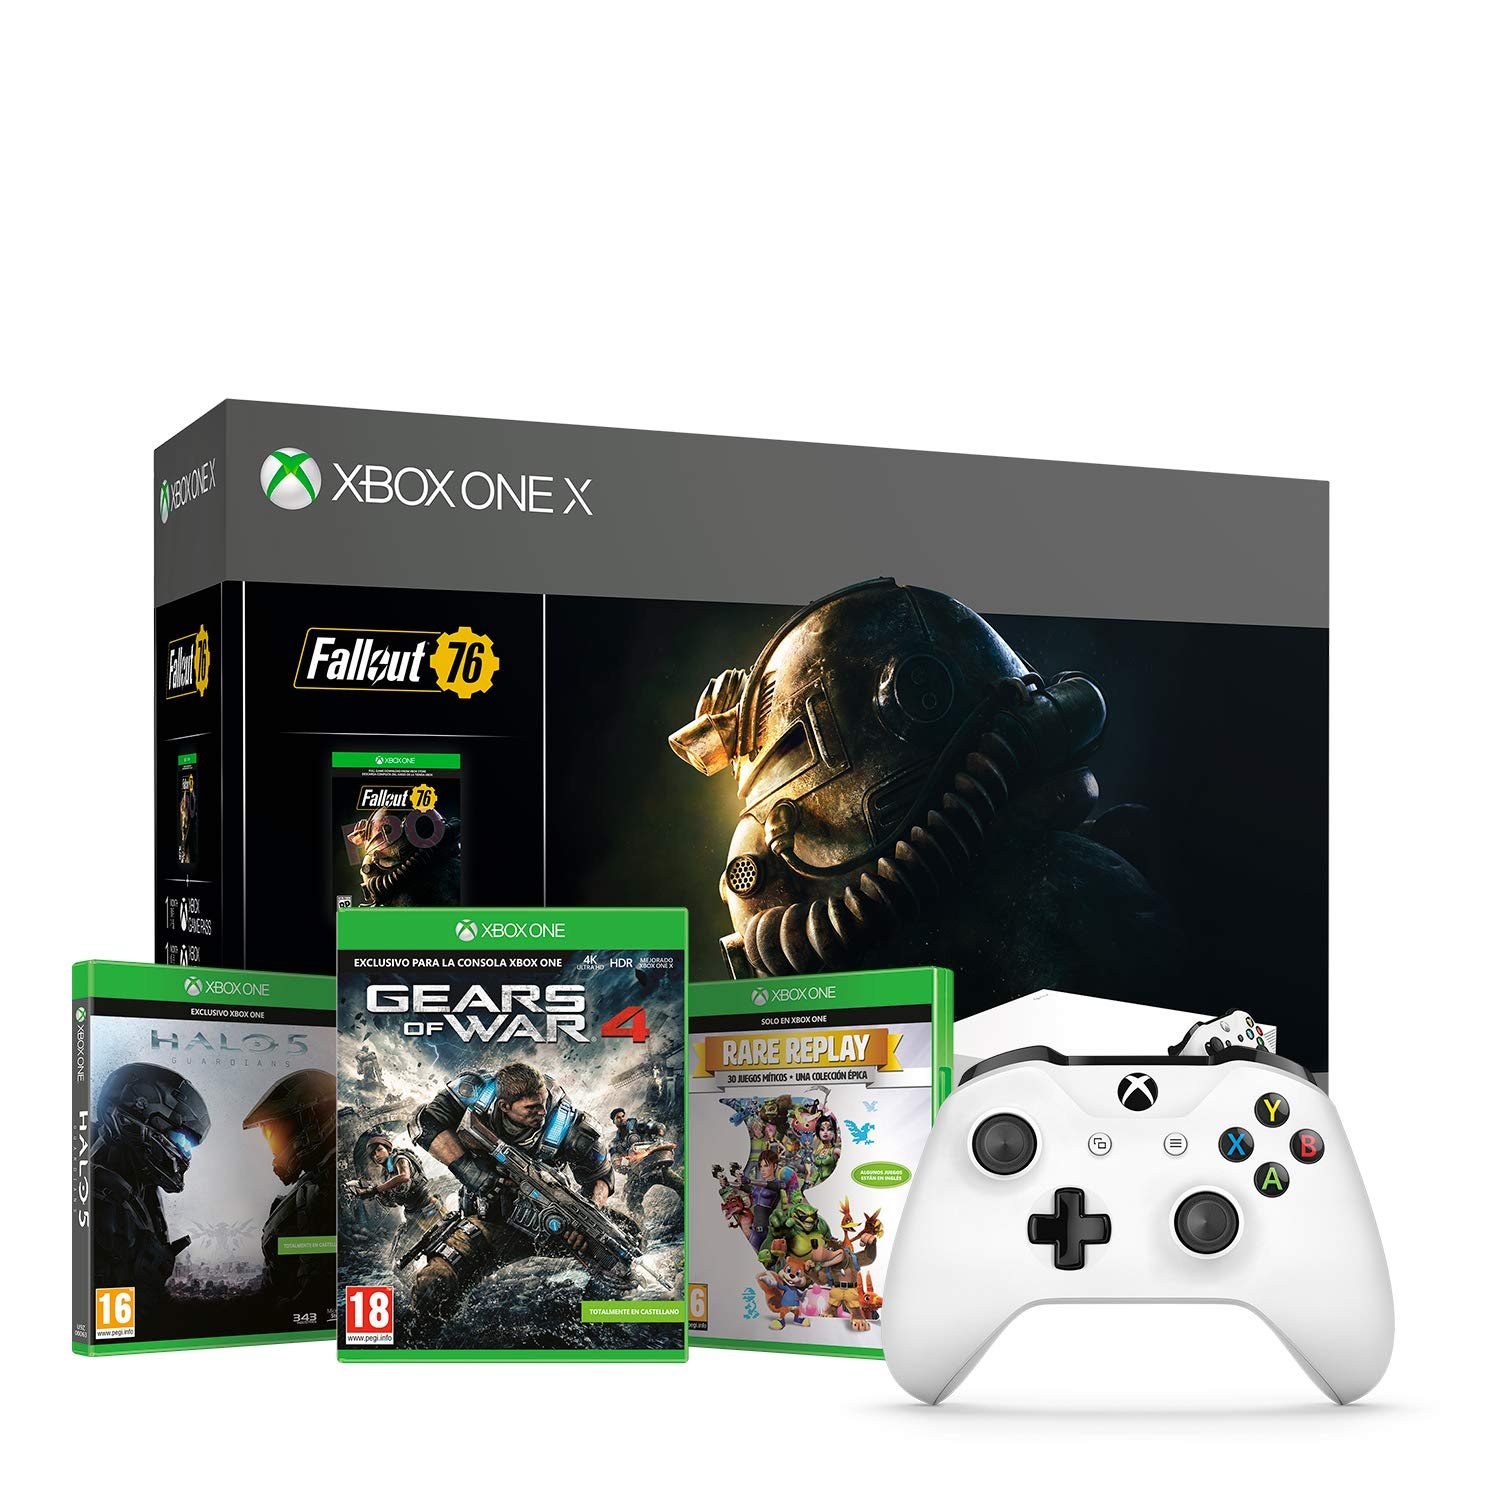 Xbox One X - Consola 1 TB, Color Blanco + Fallout + Microsoft - Xbox Wireless Controller Gamepad, Blanco (PC, Xbox One S): Amazon.es: Videojuegos